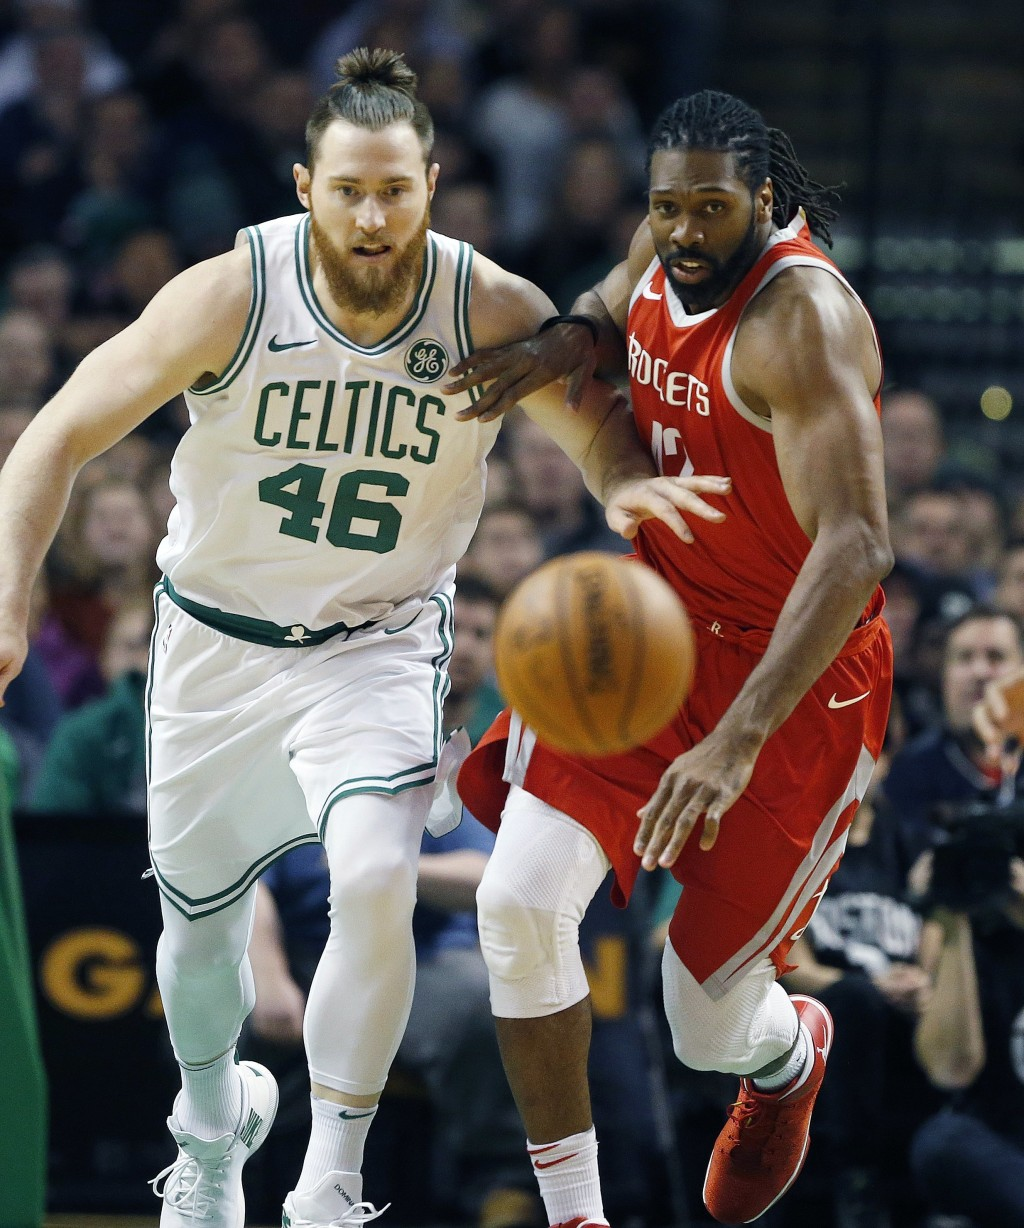 Boston Celtics' Aron Baynes (46) and Houston Rockets' Nene chase the ball during the first quarter of an NBA basketball game in Boston, Thursday, Dec....